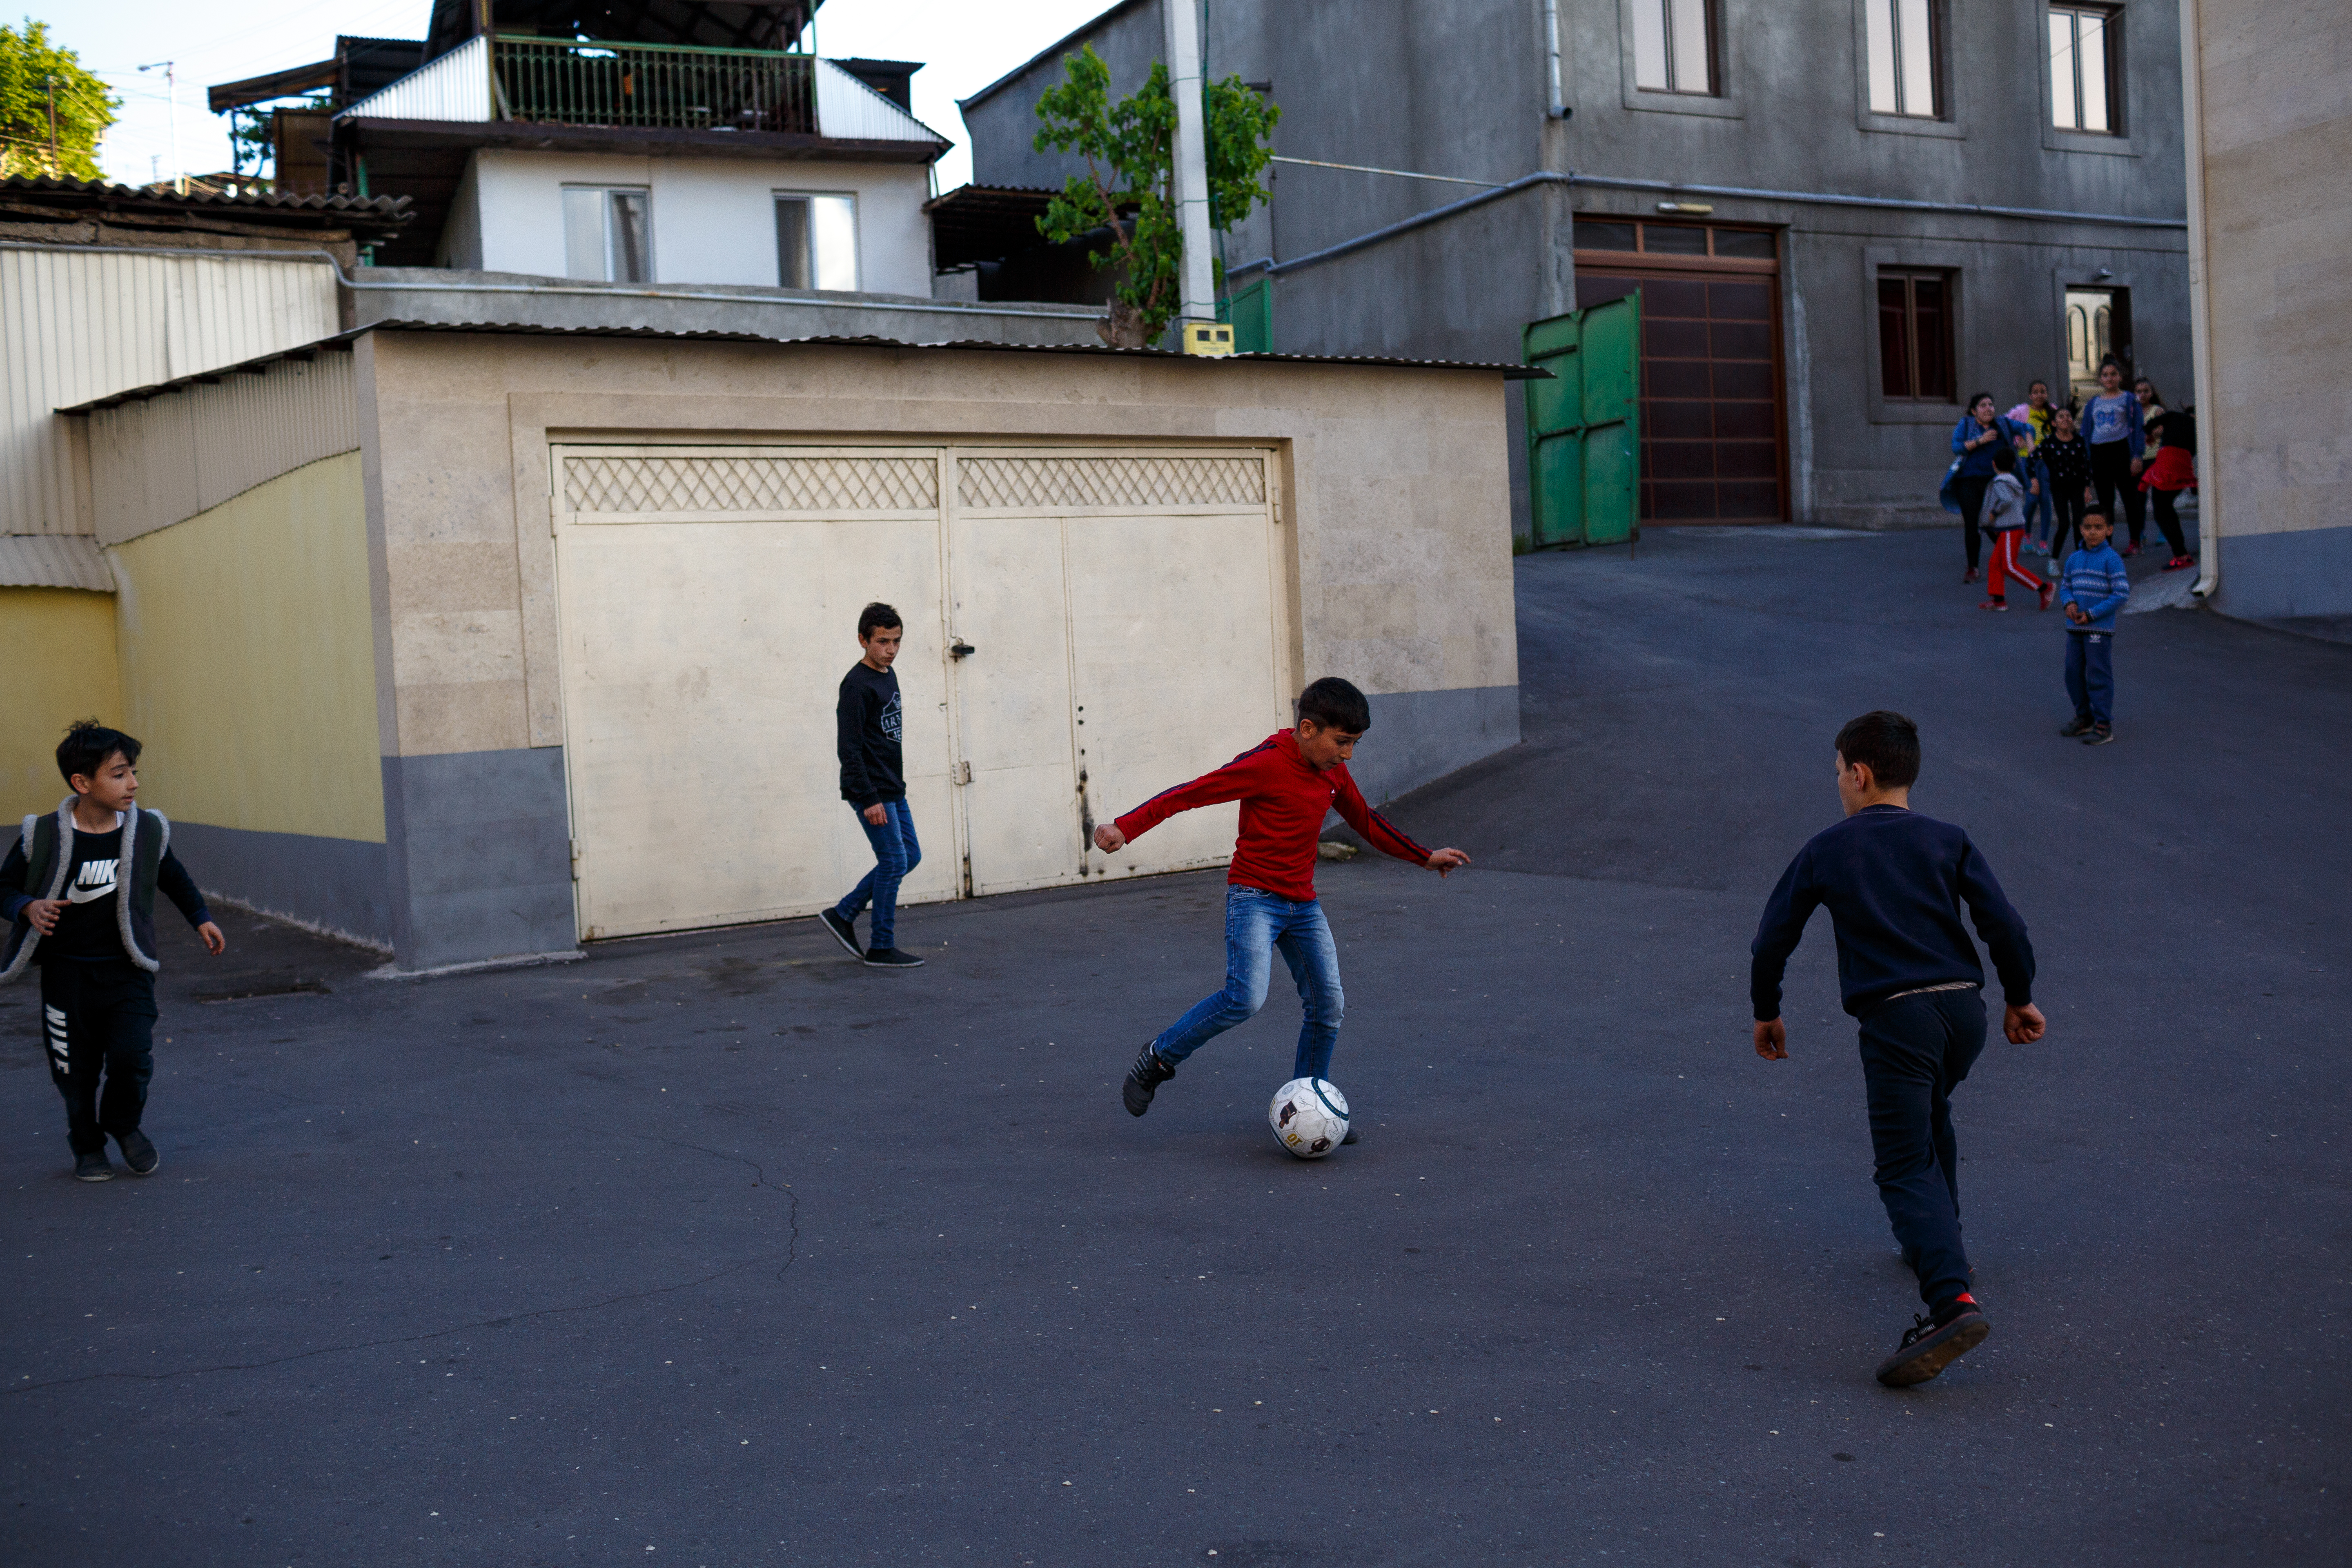 Armenia is seeing widening disparities in wealth and income. Photos by Hossein Fatemi.